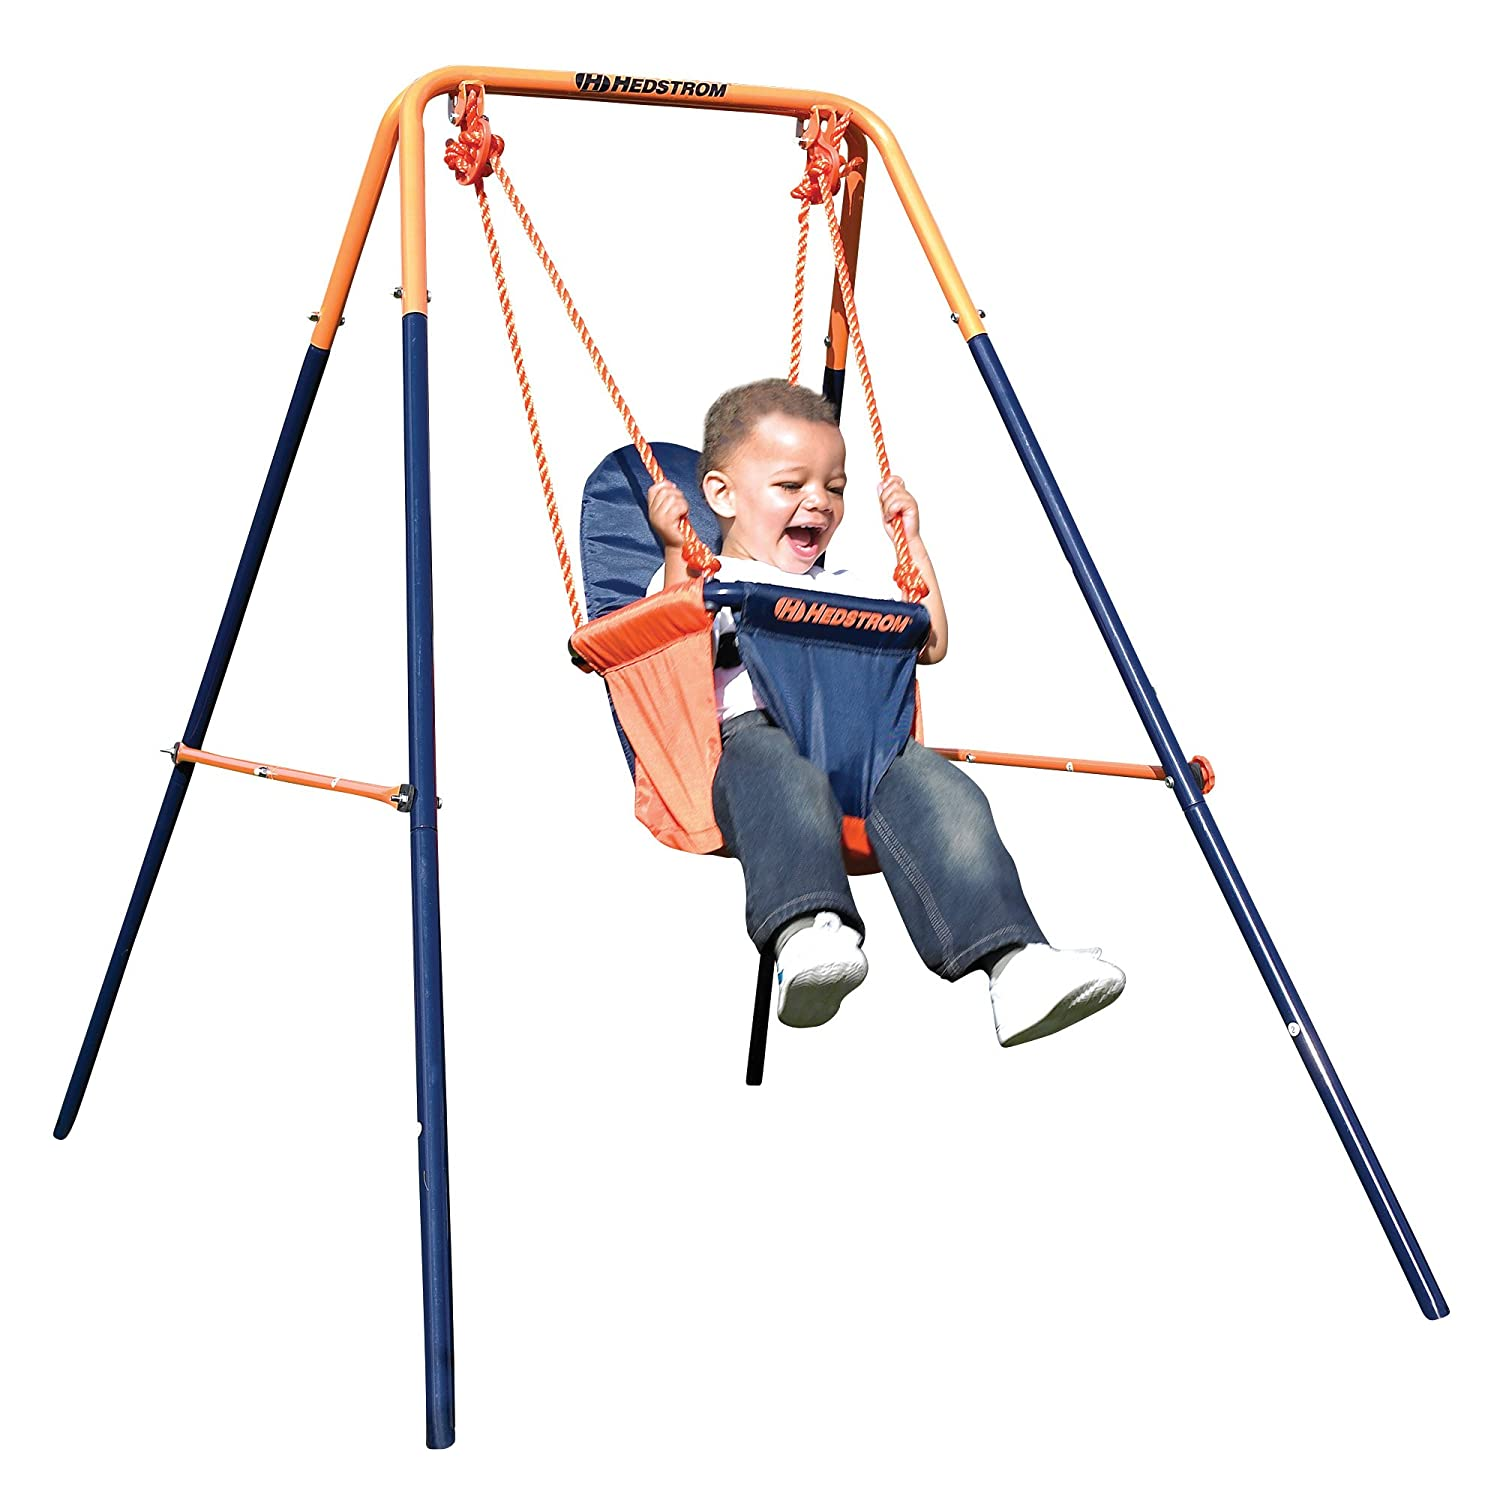 Kids Garden Swing Set Toddler Baby Childrens Outdoor Play